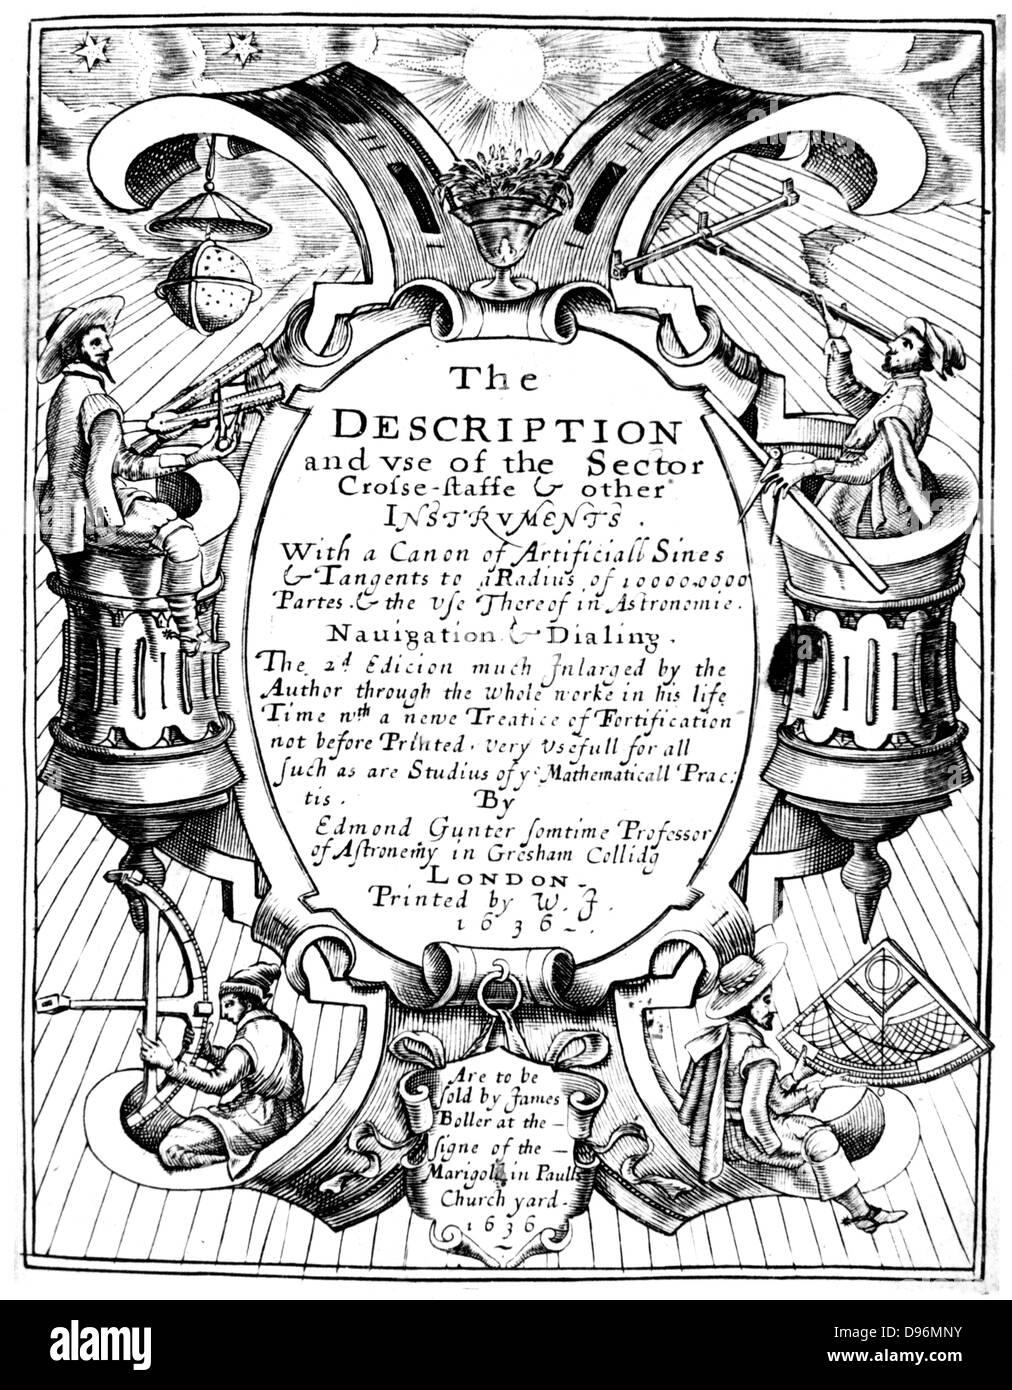 Title page of Edmund Gunter (1581-1626) 'The Description and Use of the Sector', London, 1636 (1st edition - Stock Image